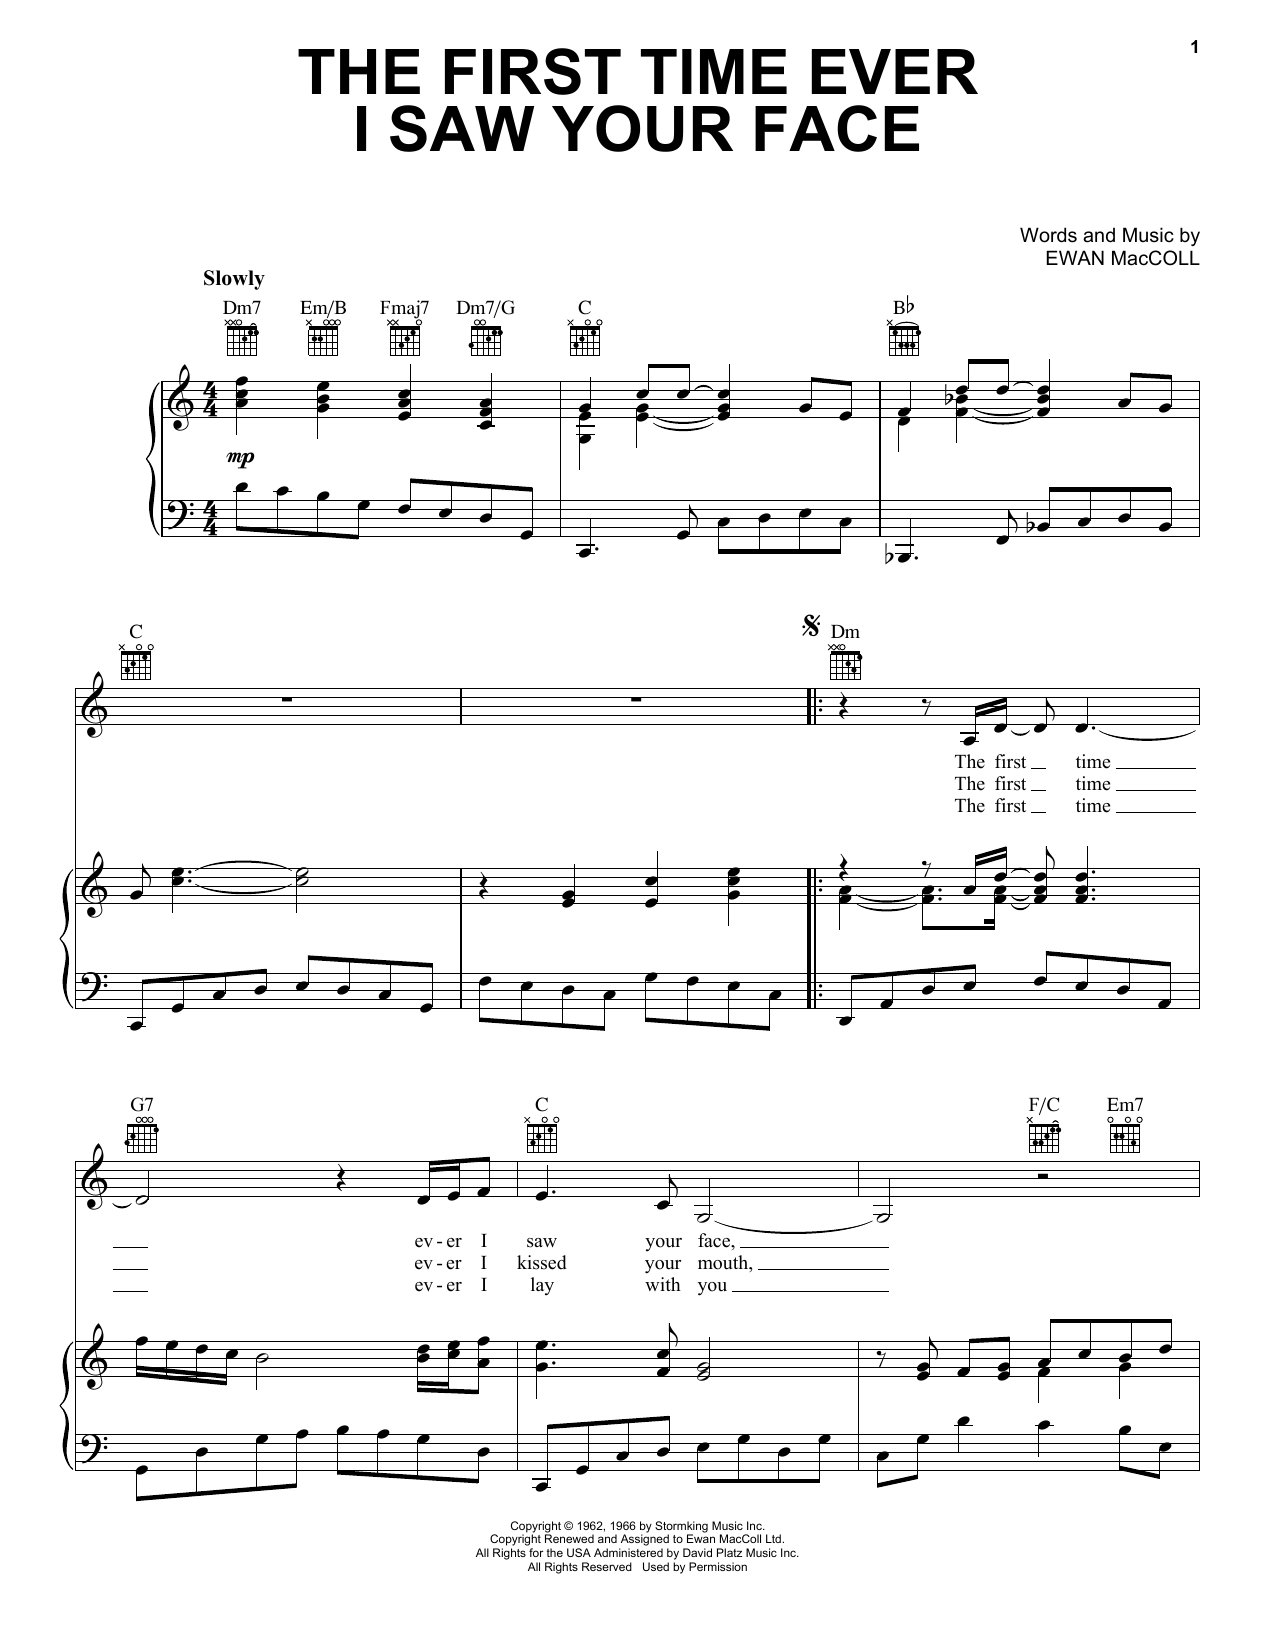 Roberta Flack The First Time Ever I Saw Your Face sheet music notes and chords. Download Printable PDF.